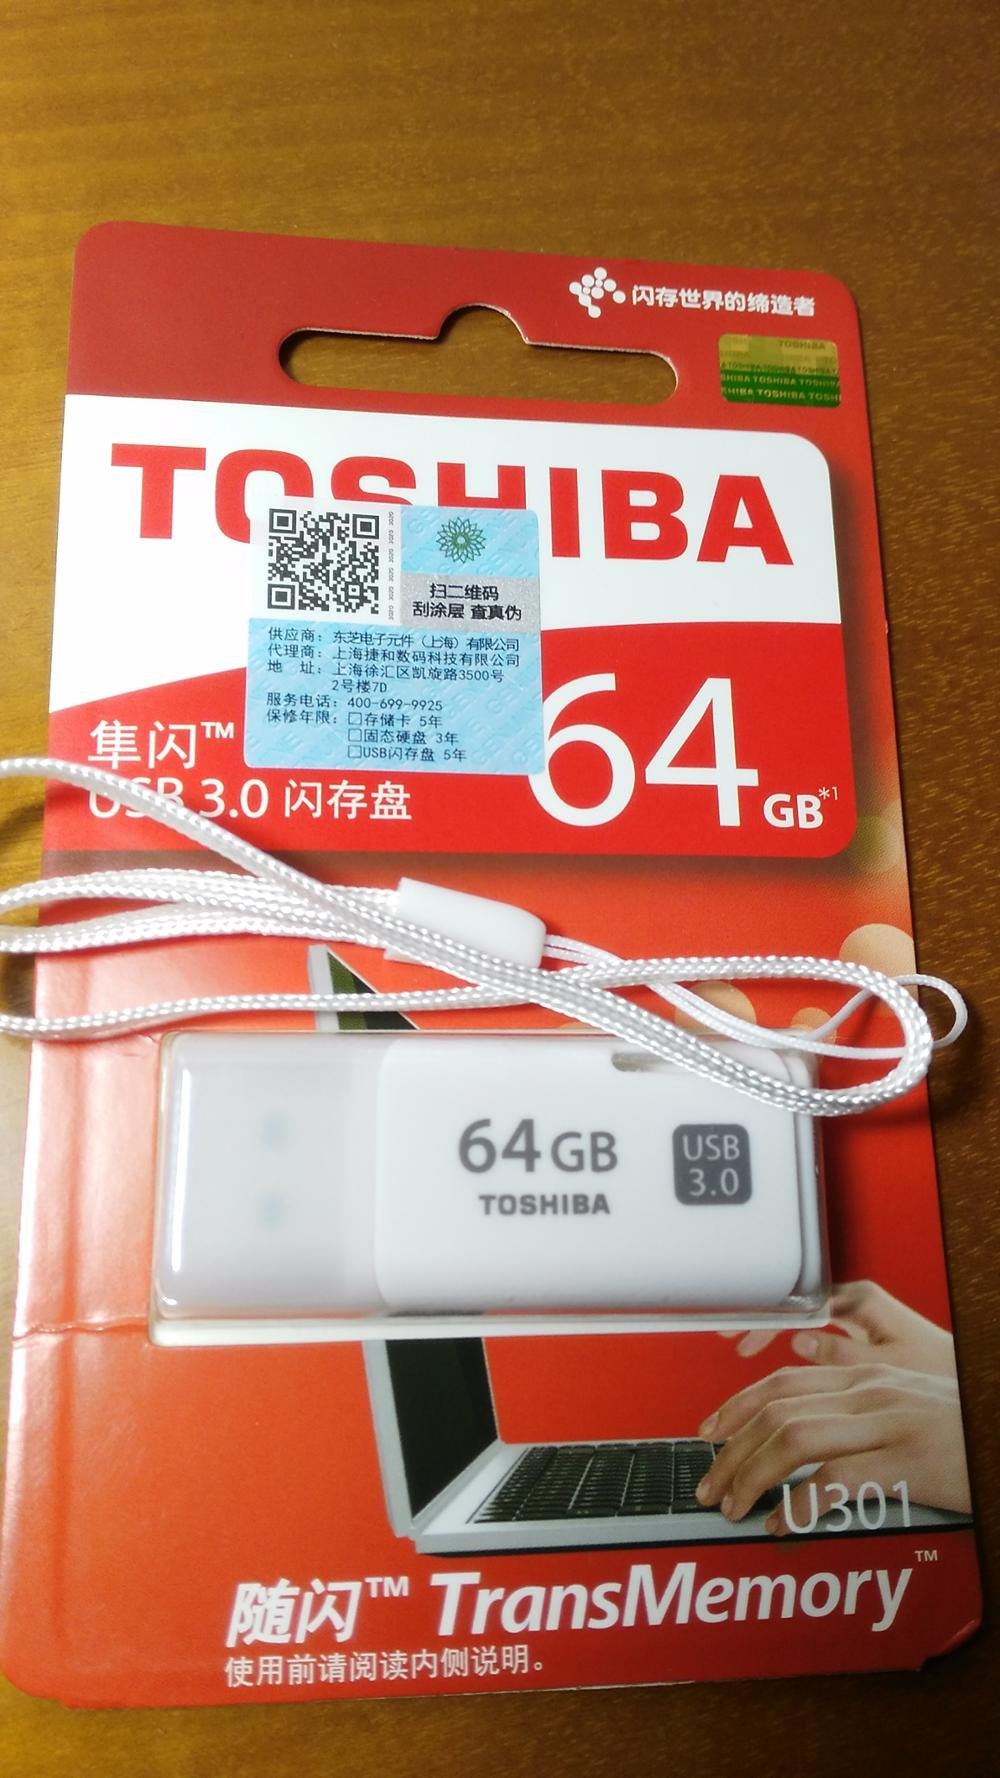 Toshiba Usb Flash Drive 64gb Real Capacity Thuhybs 30 32gb 16g Flashdisk Flasdisk 64 Gb Difficult To Find A Lower Price For Pen Recommended Thanks